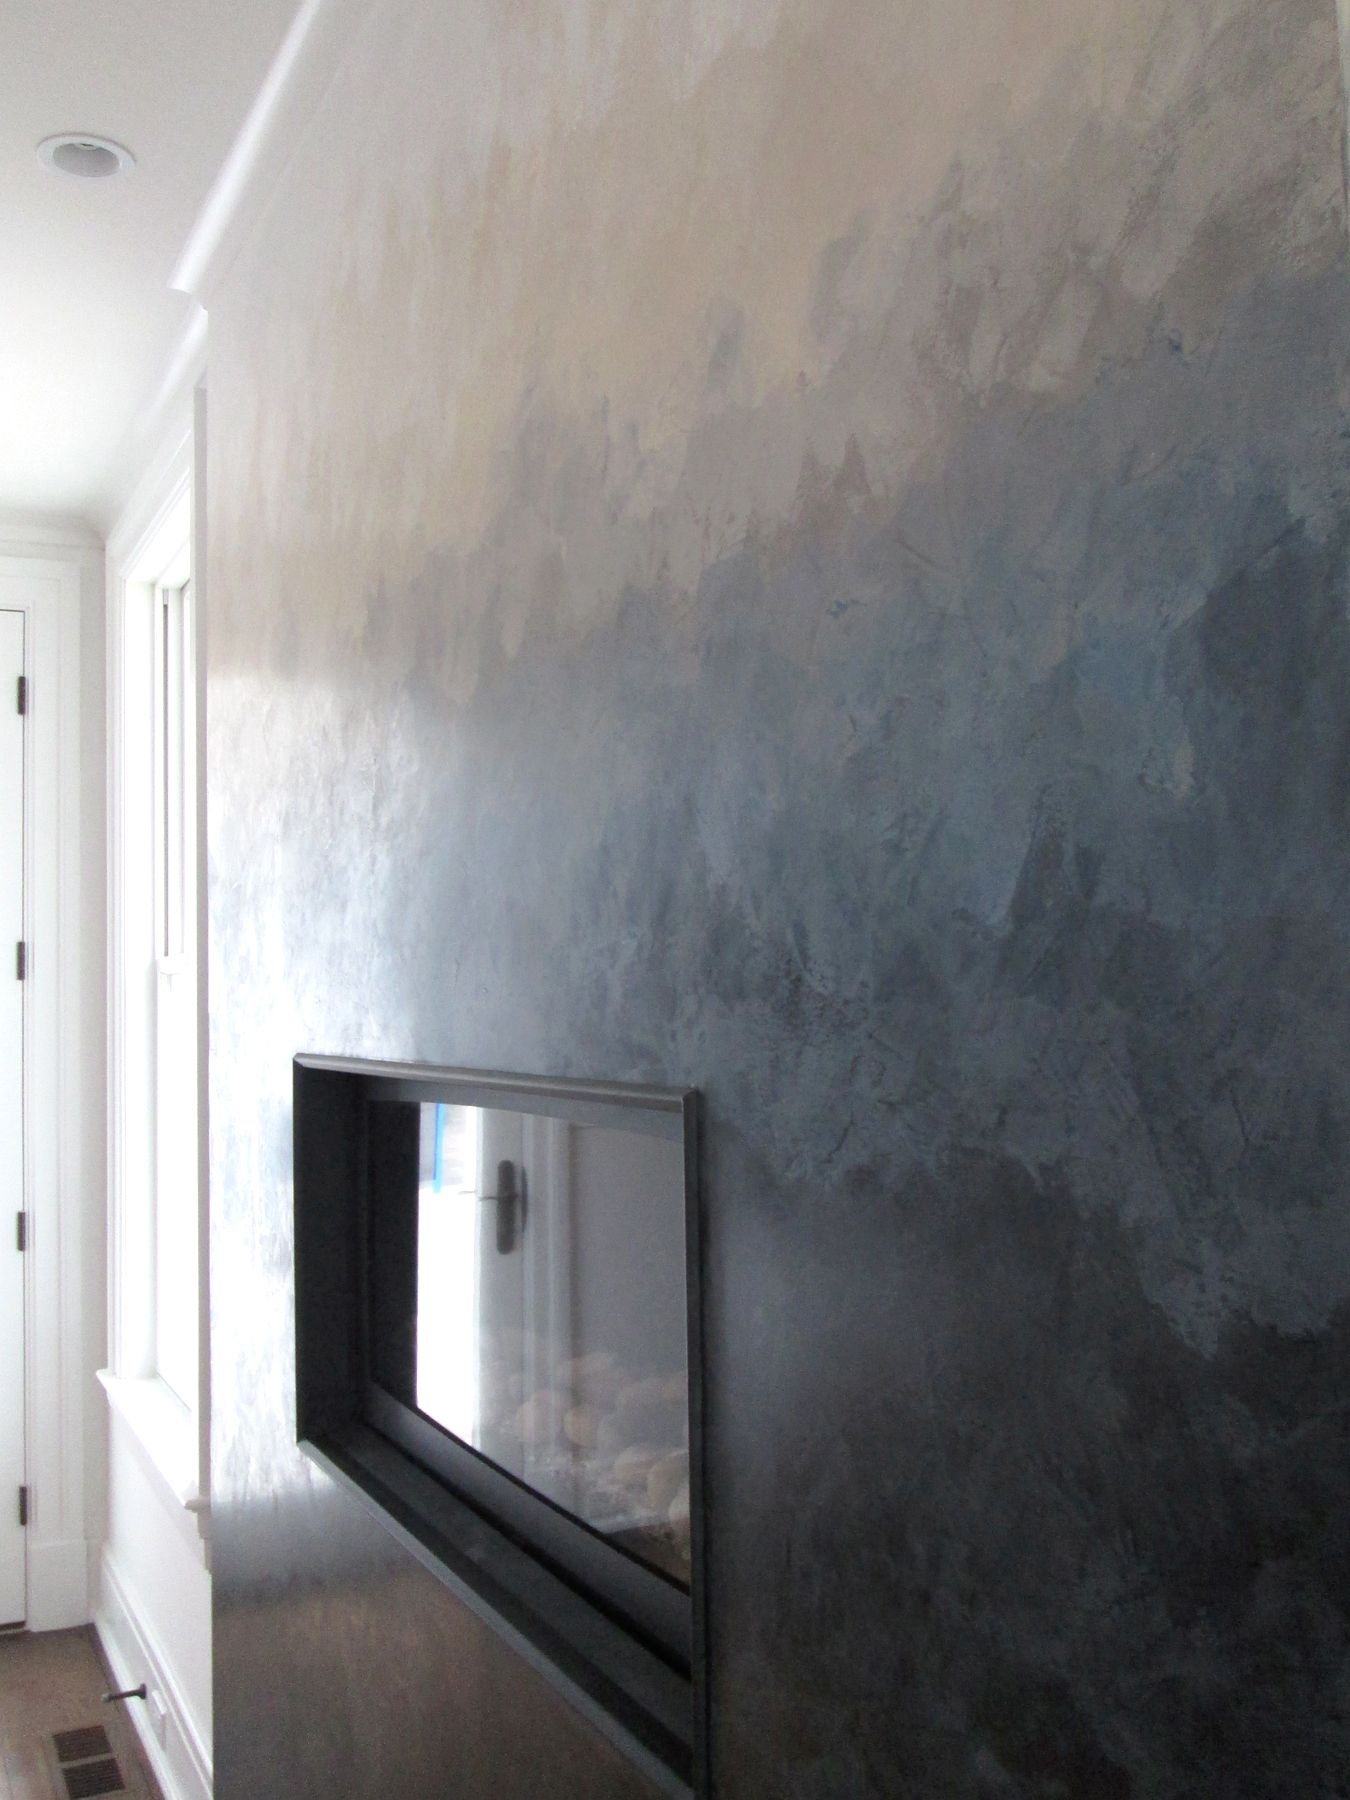 Venetian Plaster And Other Modern Plaster Walls: Ombré Effect Created With Venetian Plaster And Then